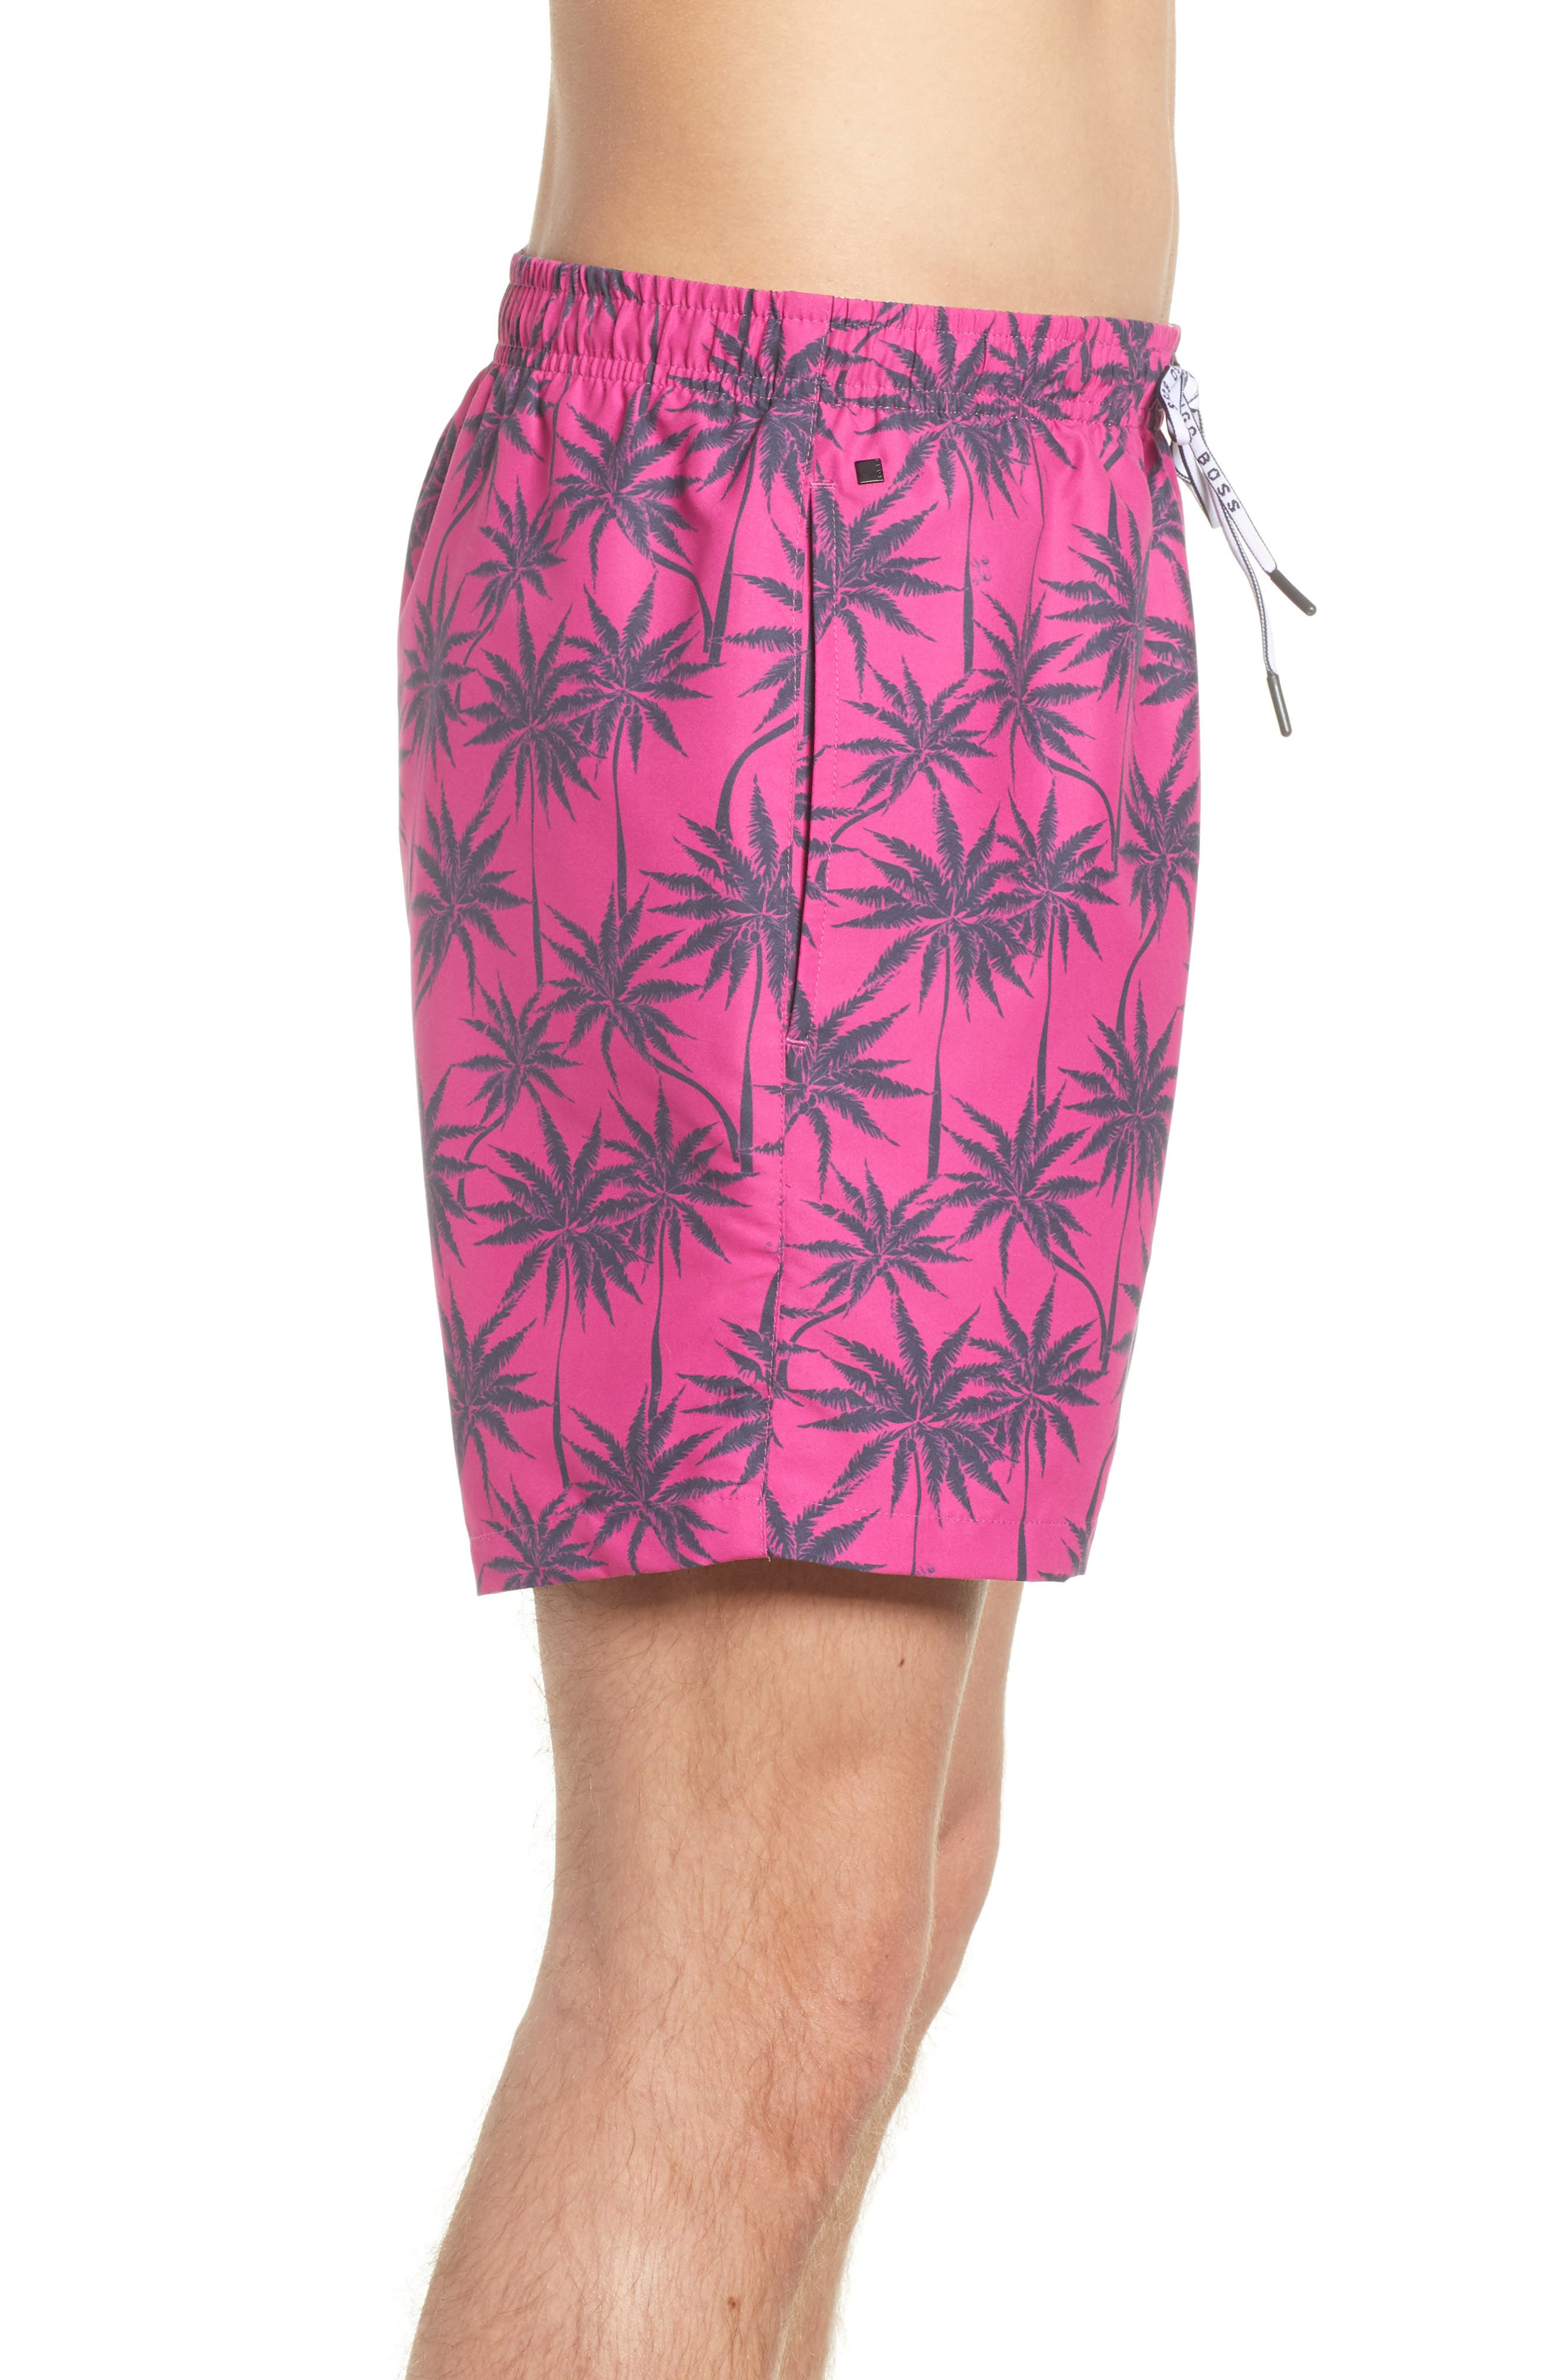 Piranha Palm Tree Swim Trunks,                             Alternate thumbnail 3, color,                             Pink